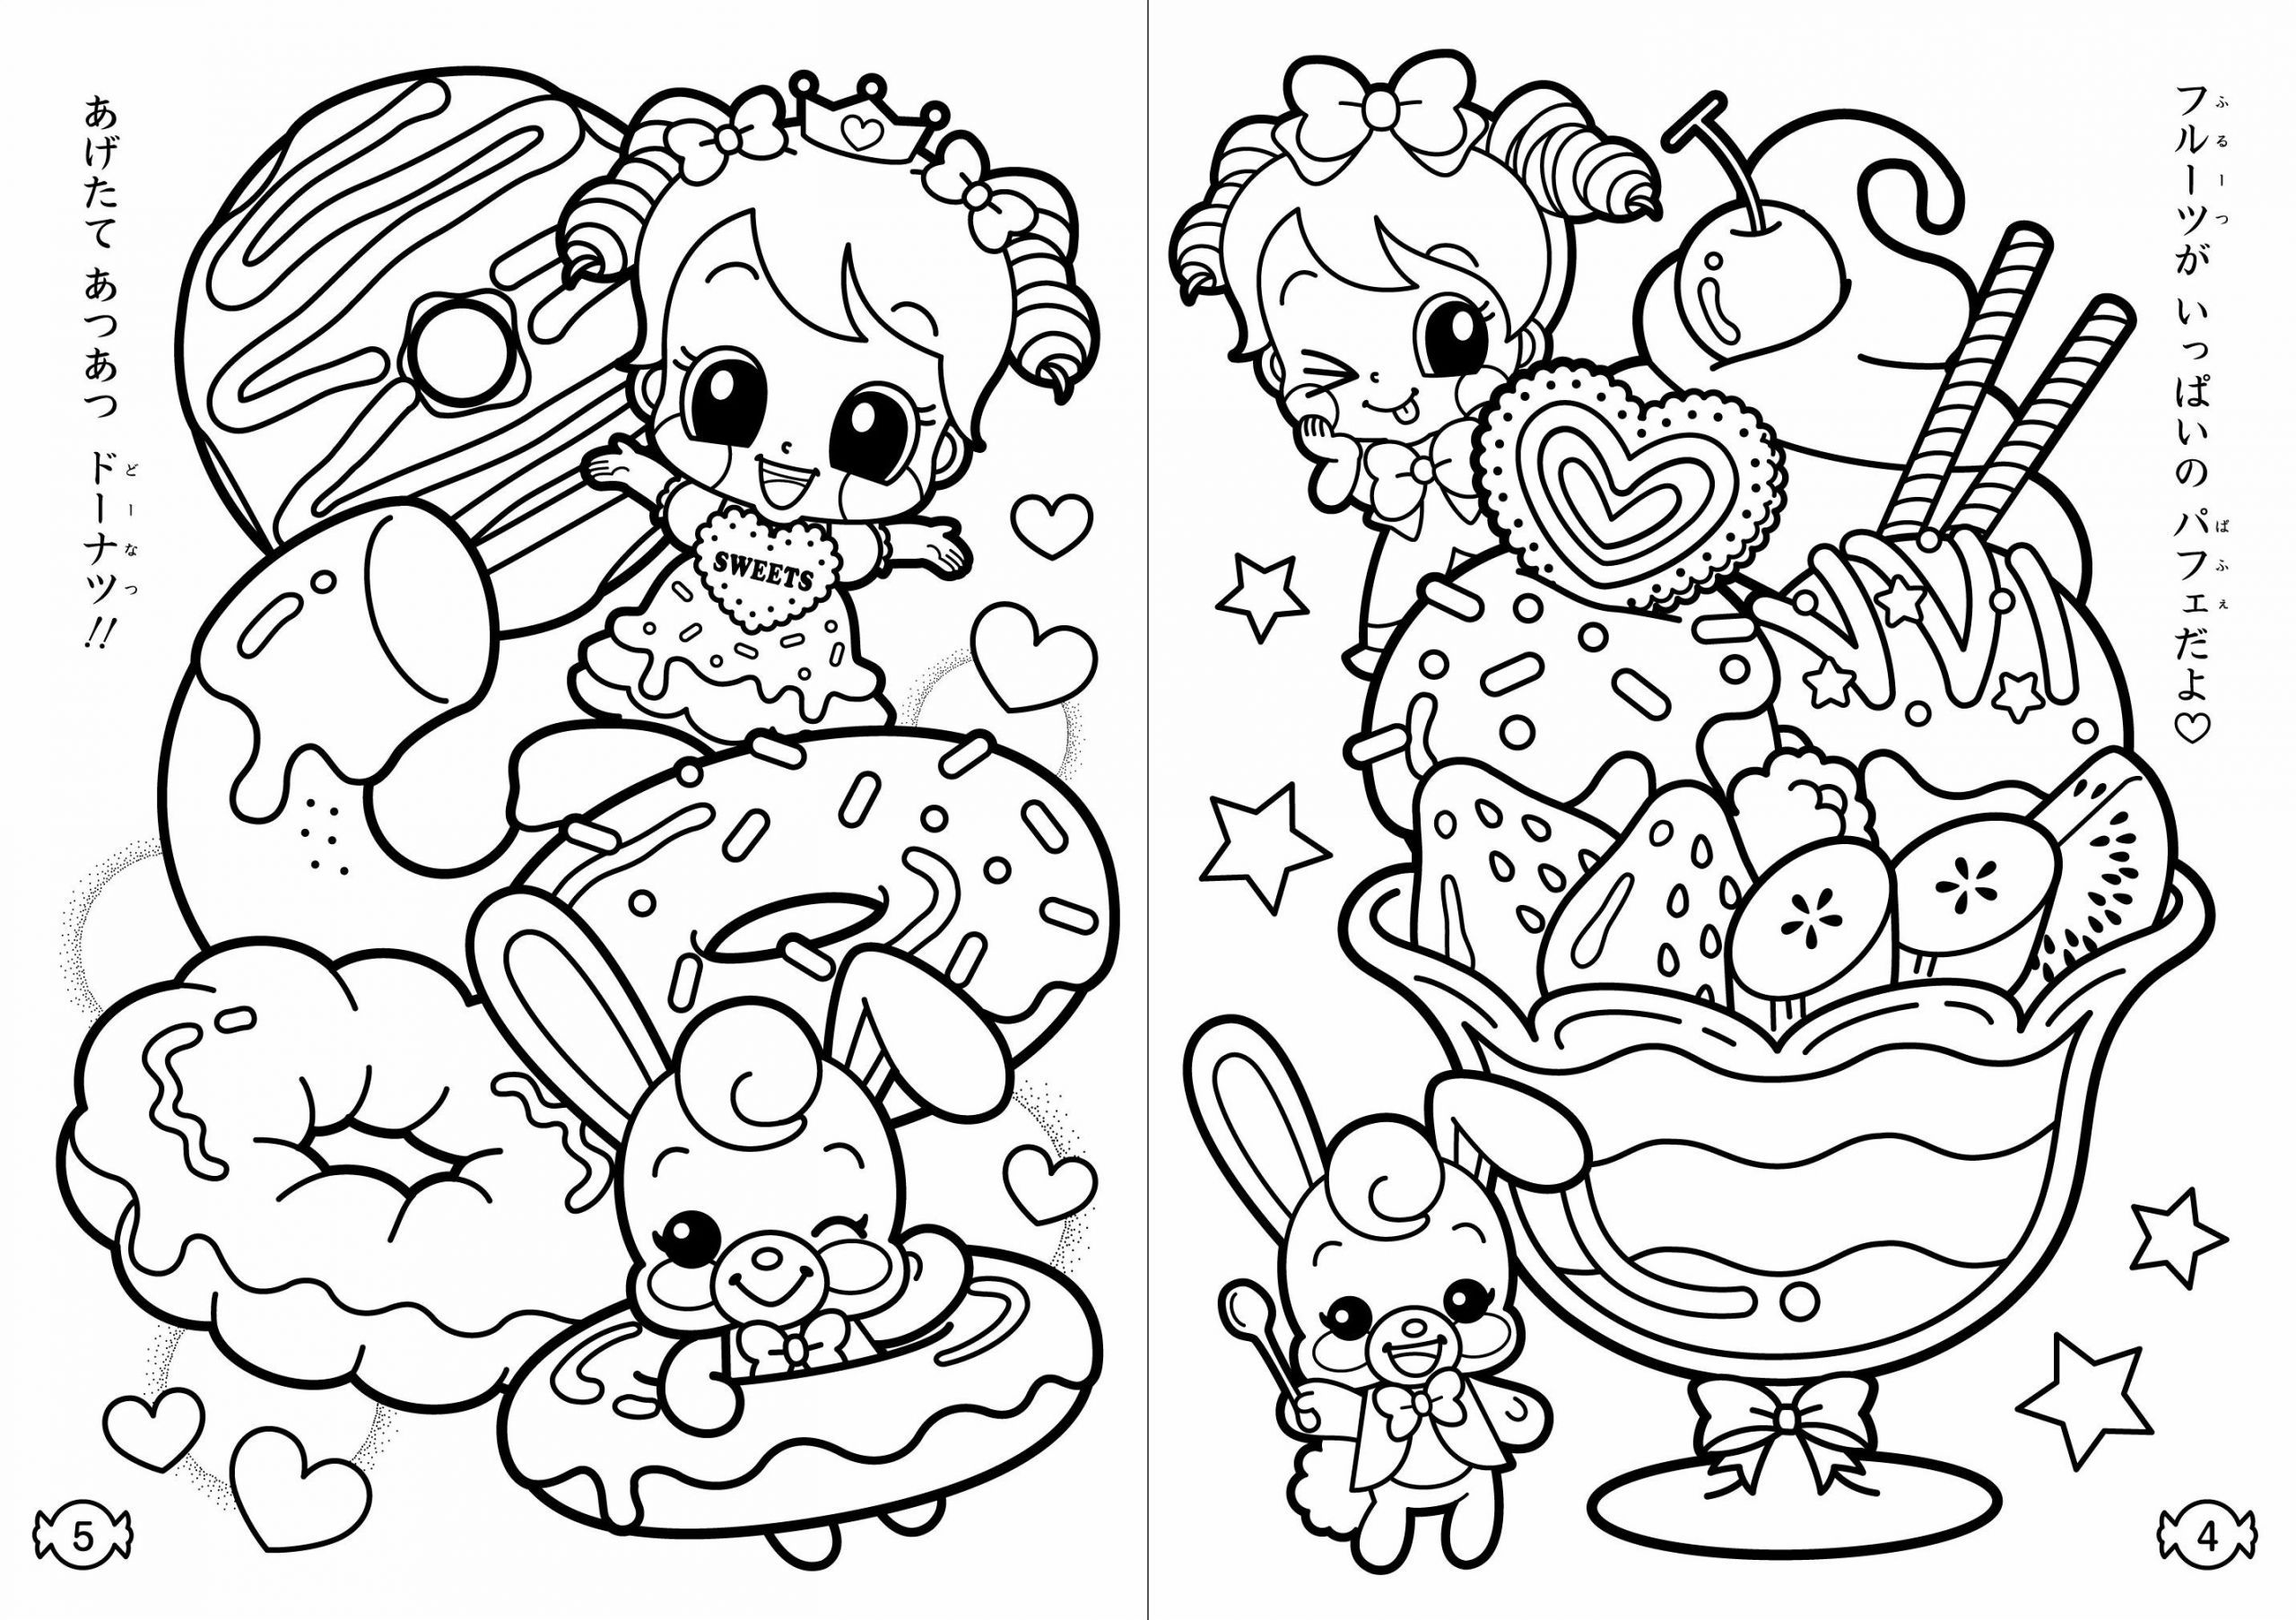 4 Sweet And Cute Coloring Pages For Girls Pin By Princess Nini On Coloring Pages Unicorn Coloring Pages Cute Coloring Pages Disney Coloring Pages